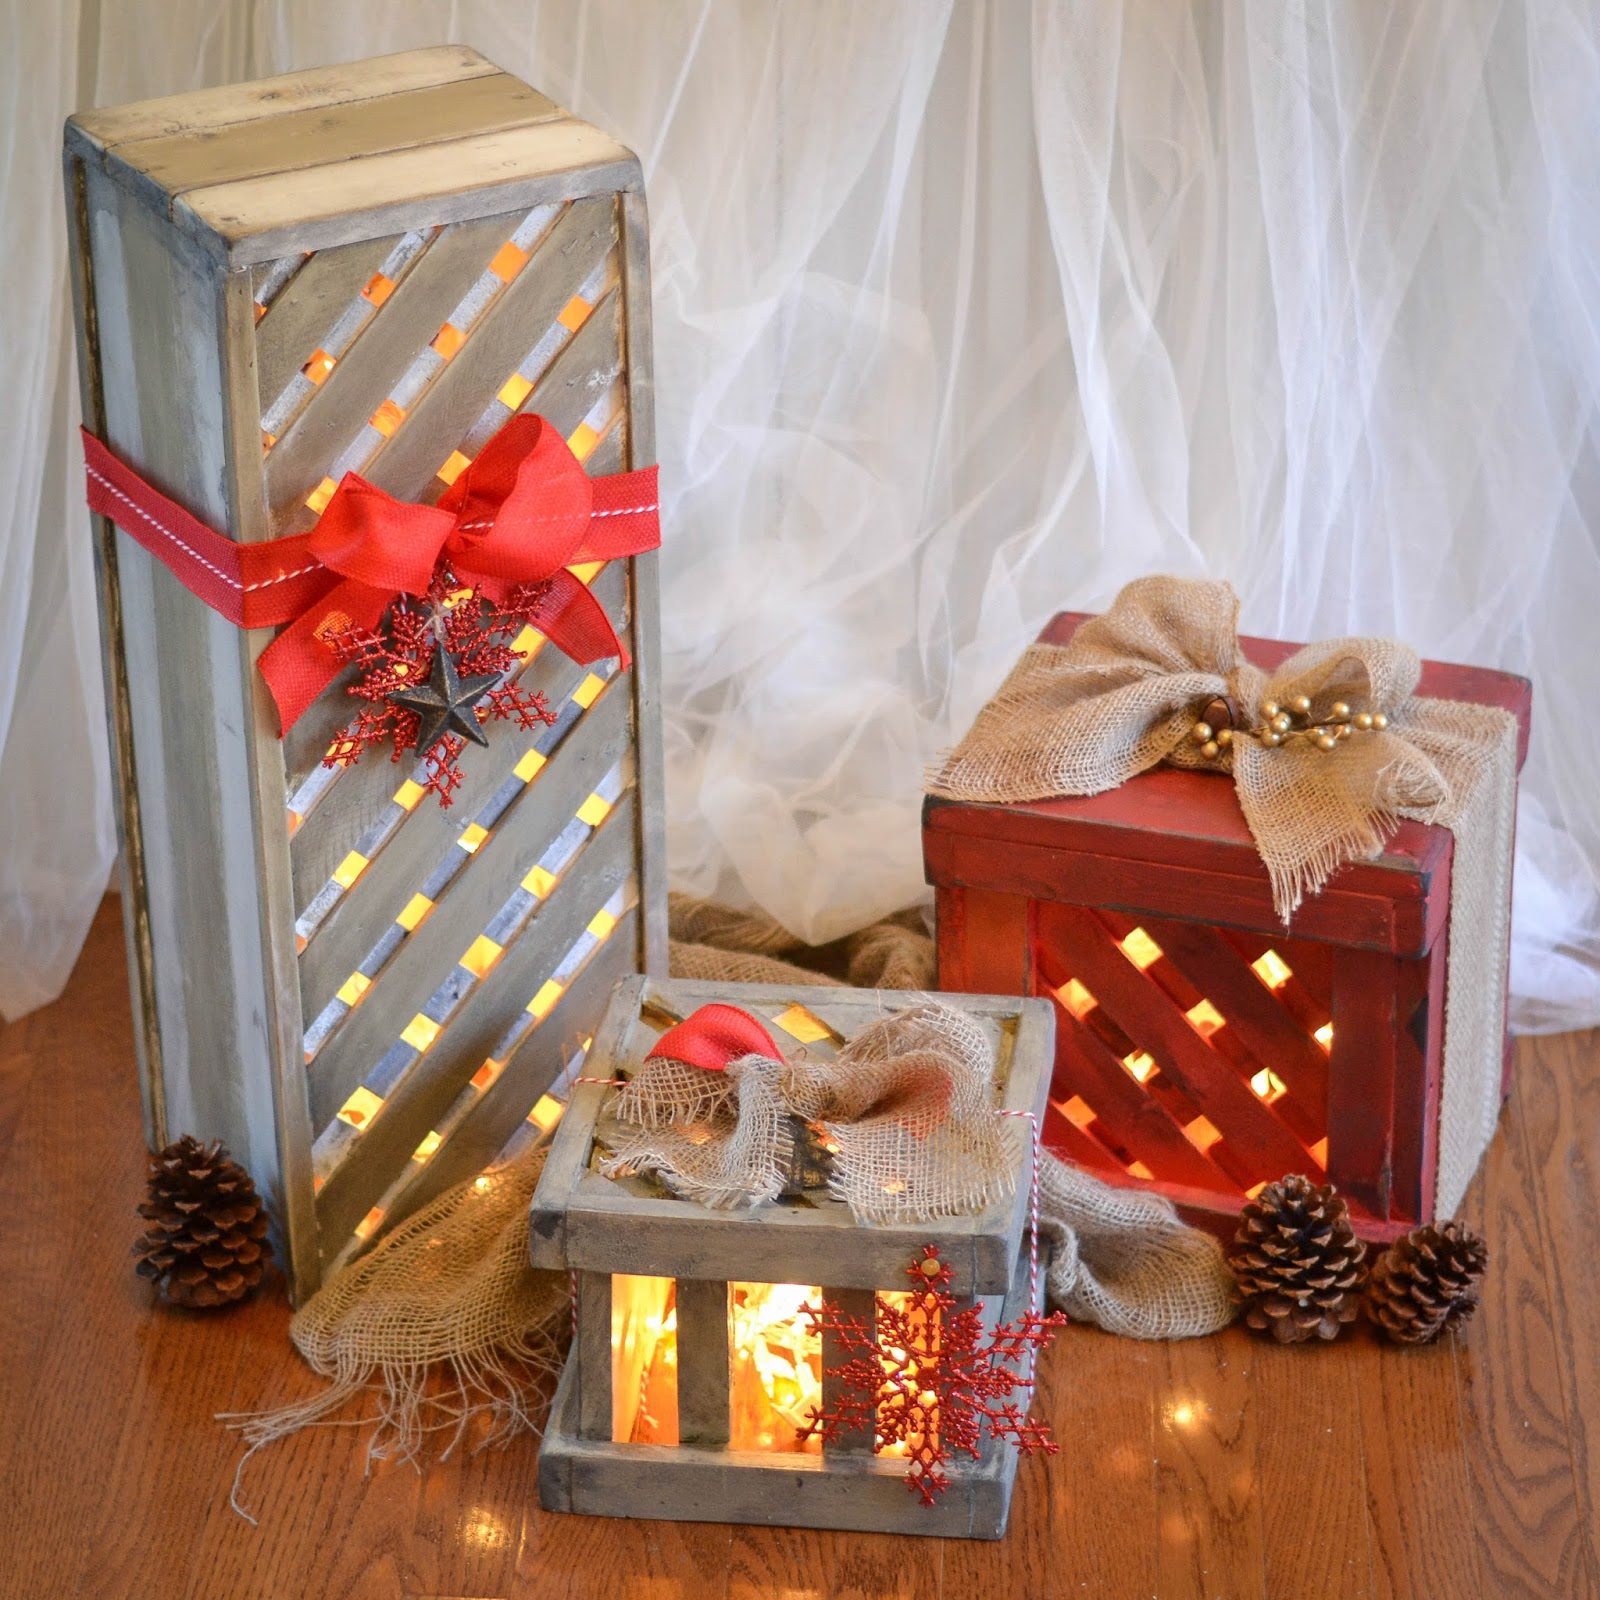 down to earth style make wooden christmas gift box decor. Black Bedroom Furniture Sets. Home Design Ideas